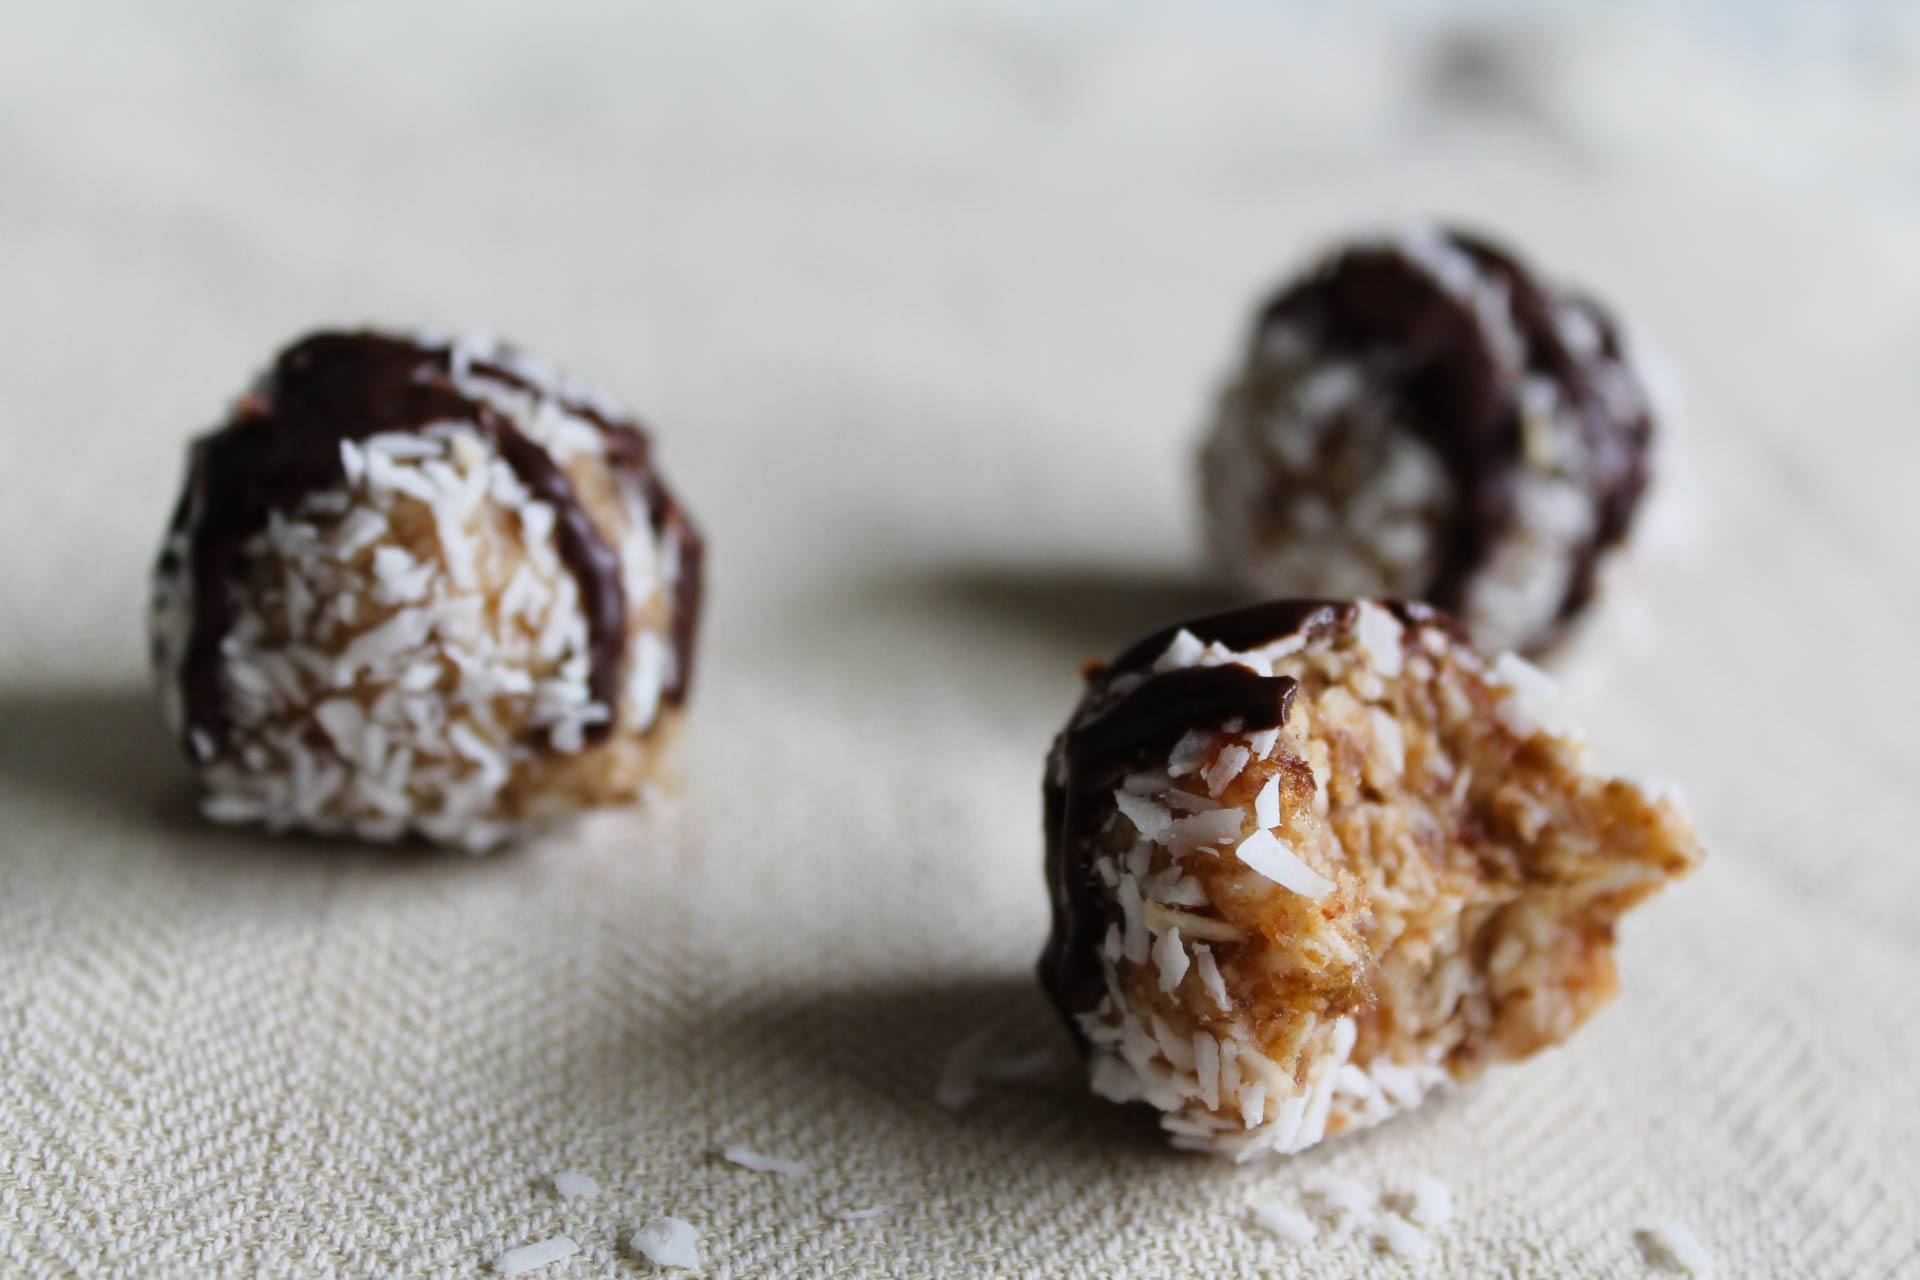 coconut chocolate date balls